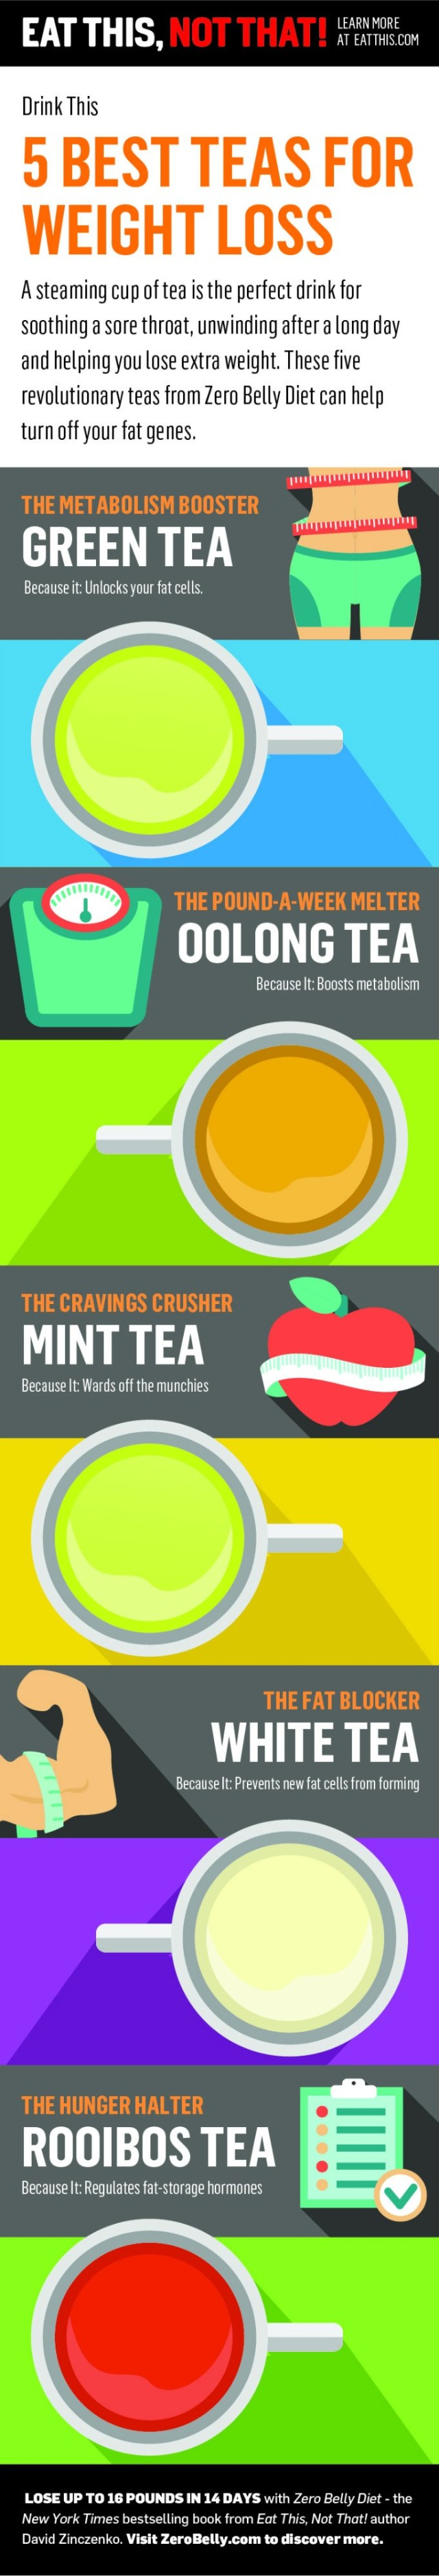 best teas for weight loss